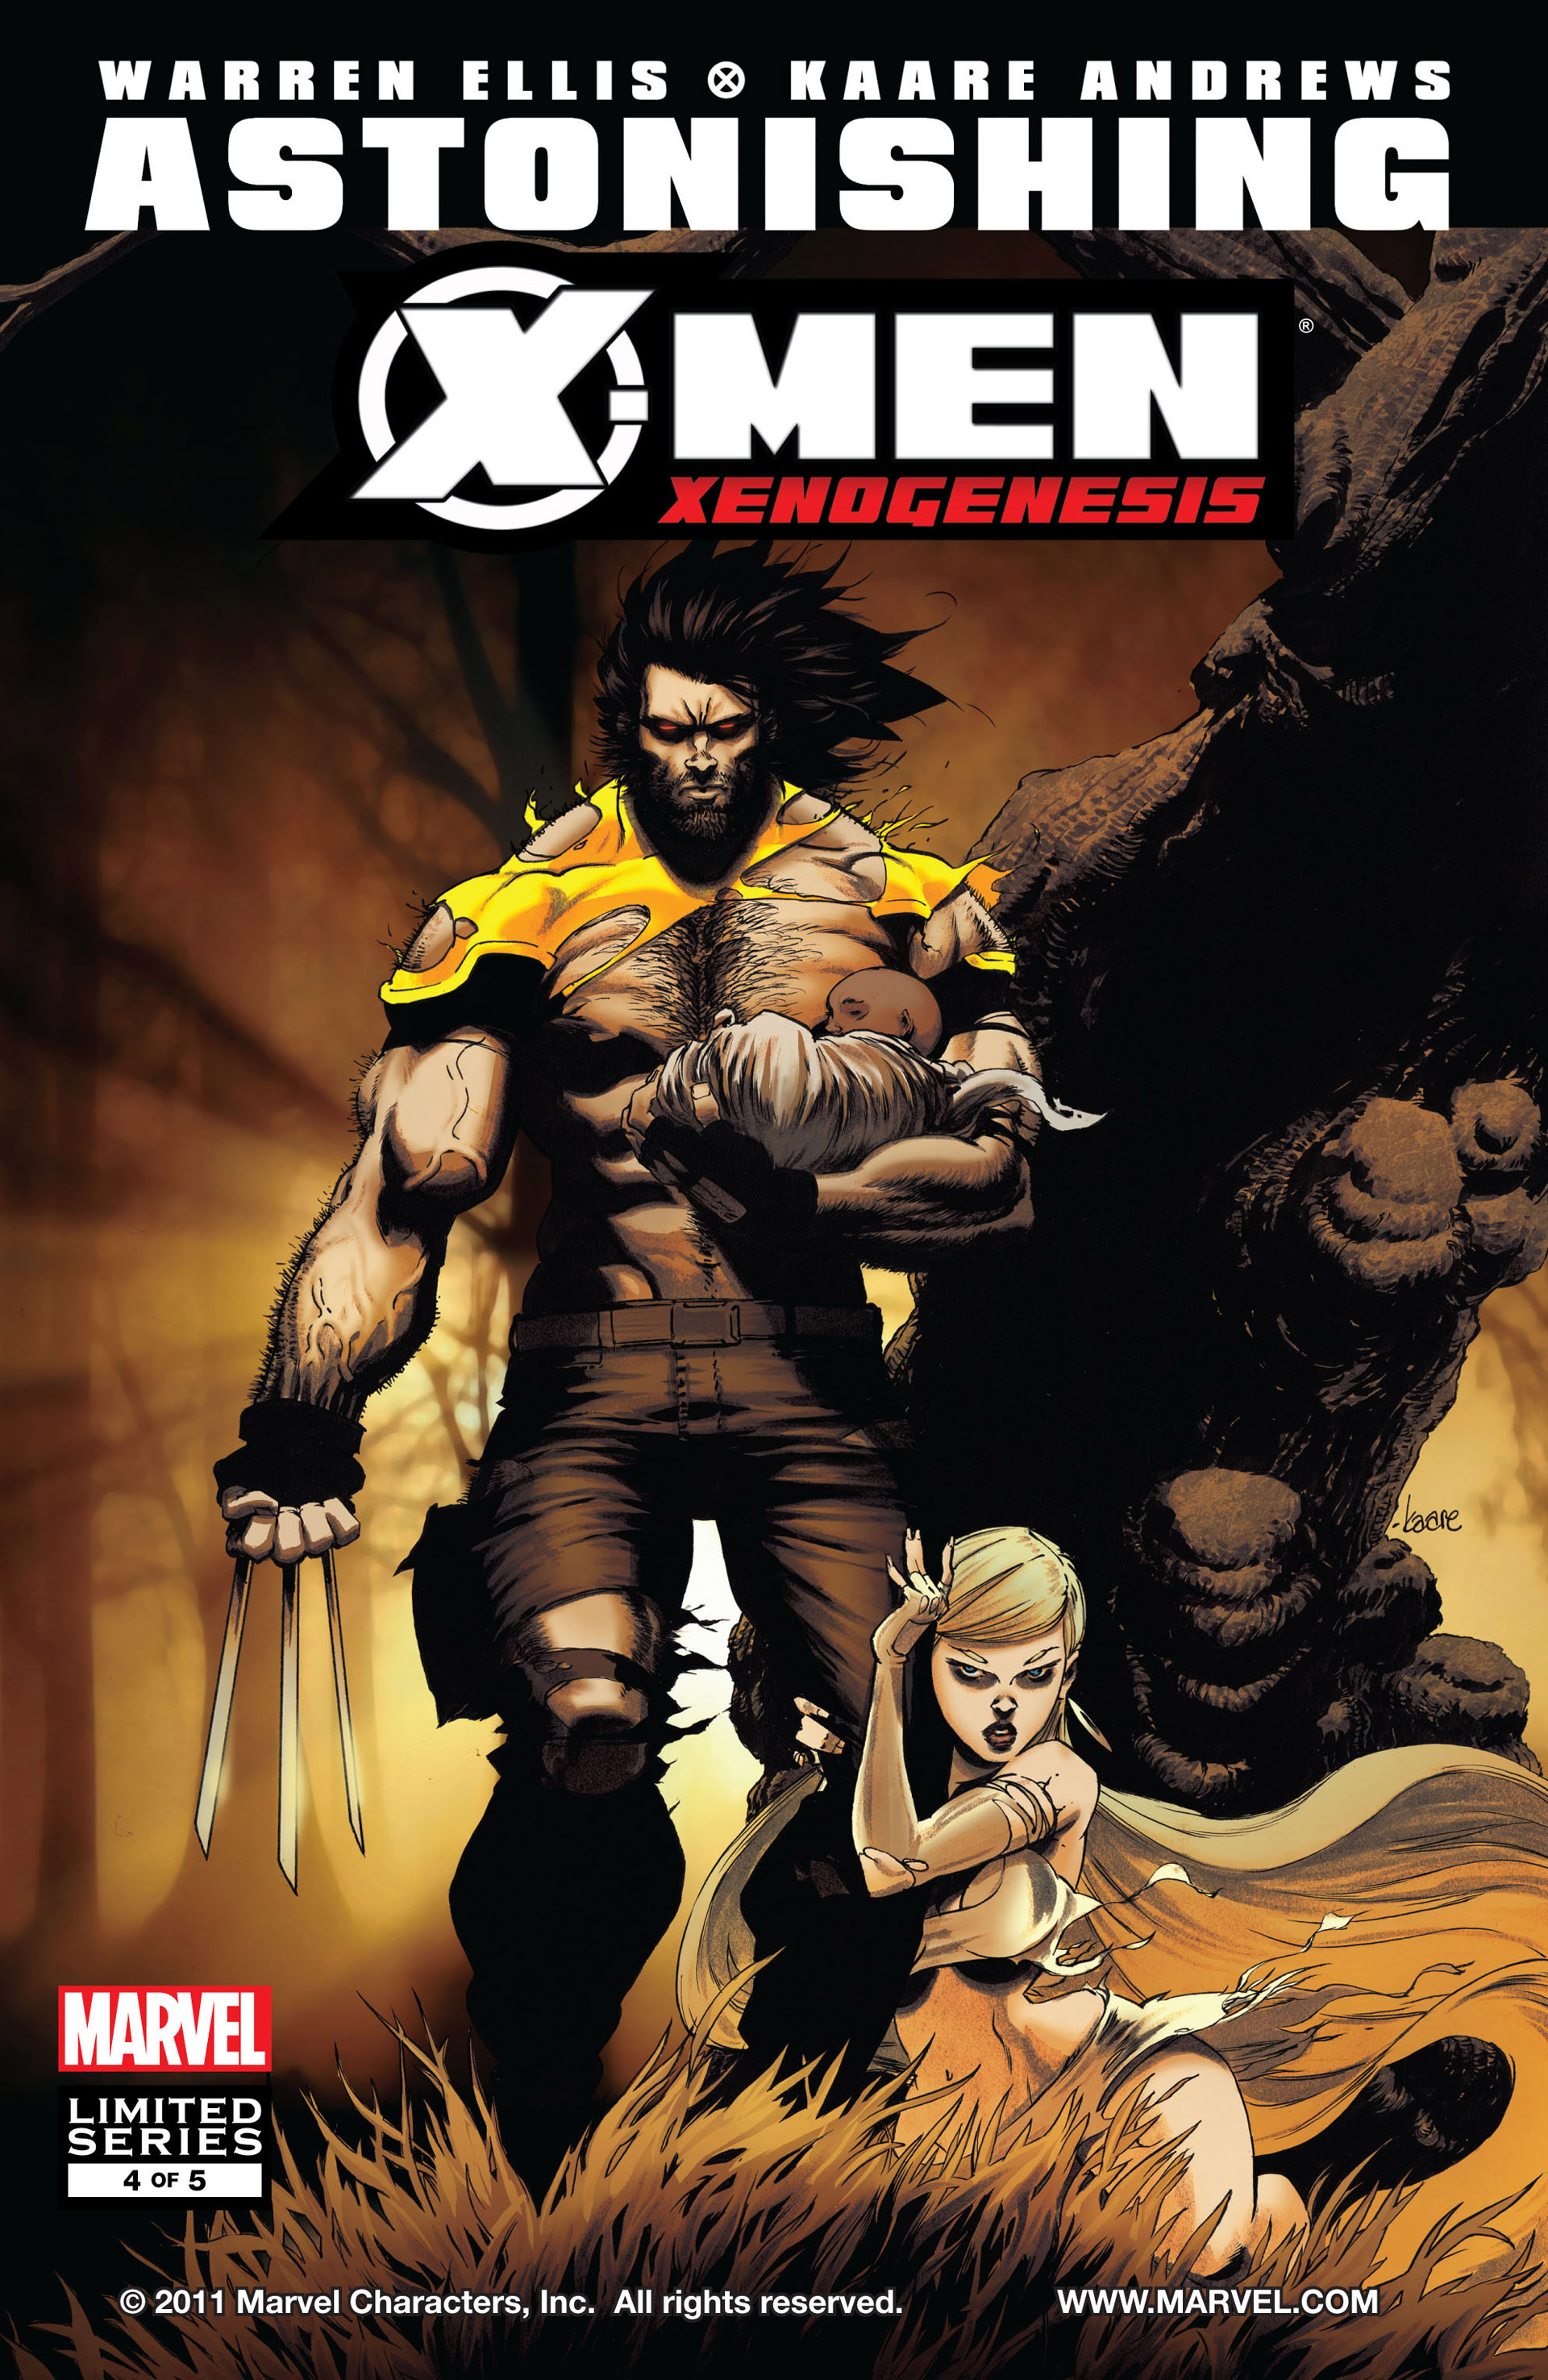 Astonishing X-Men: Xenogenesis Vol 1 4